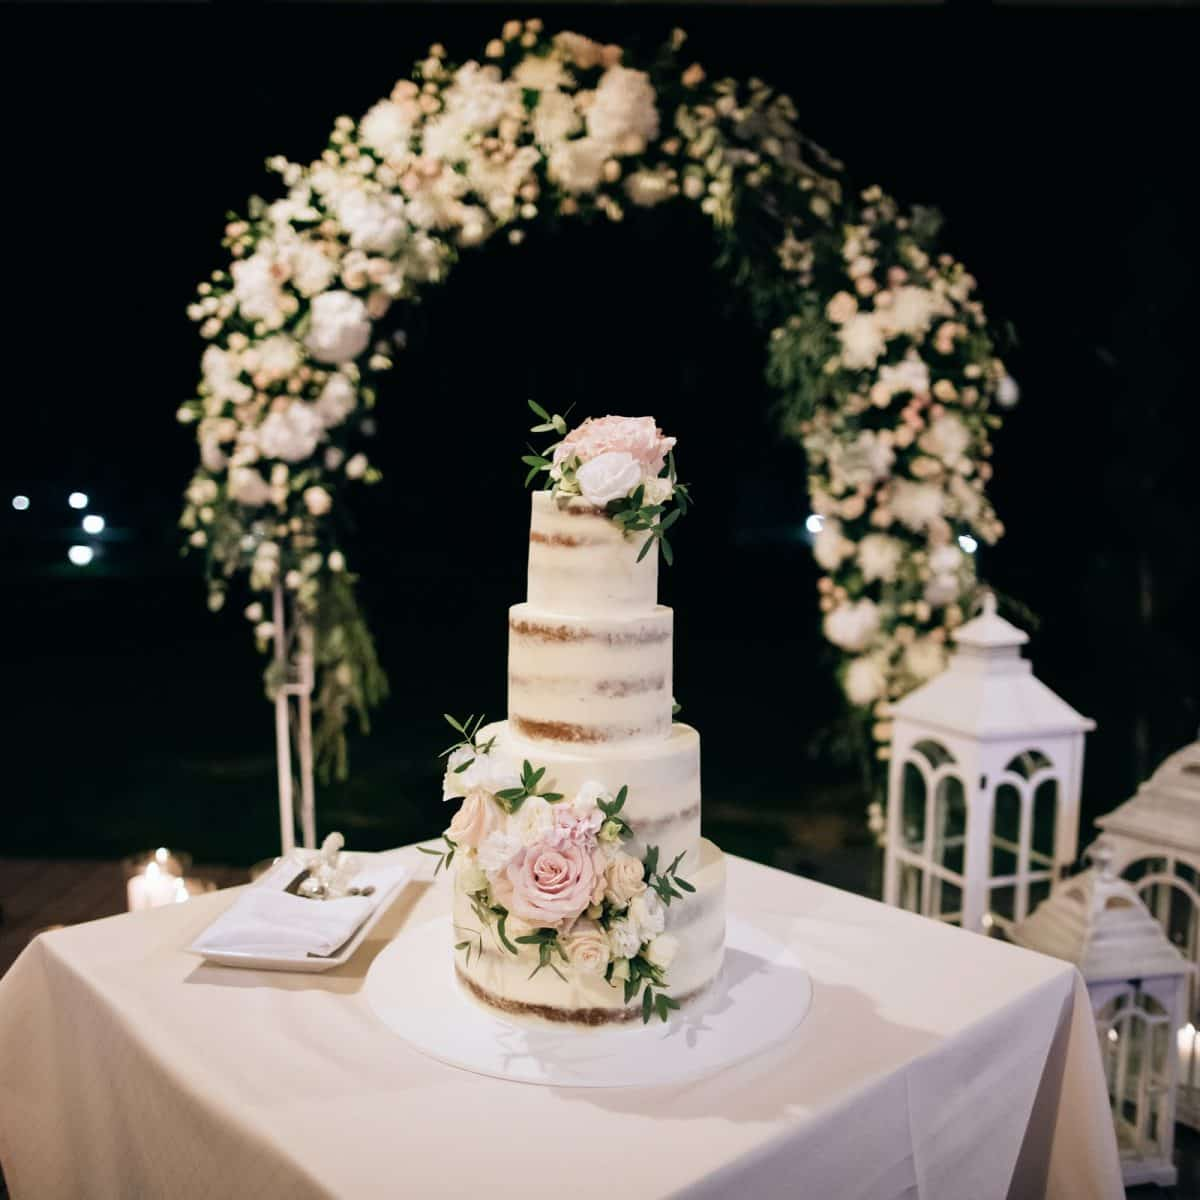 beautiful wedding cake with candles and flowers outdoors